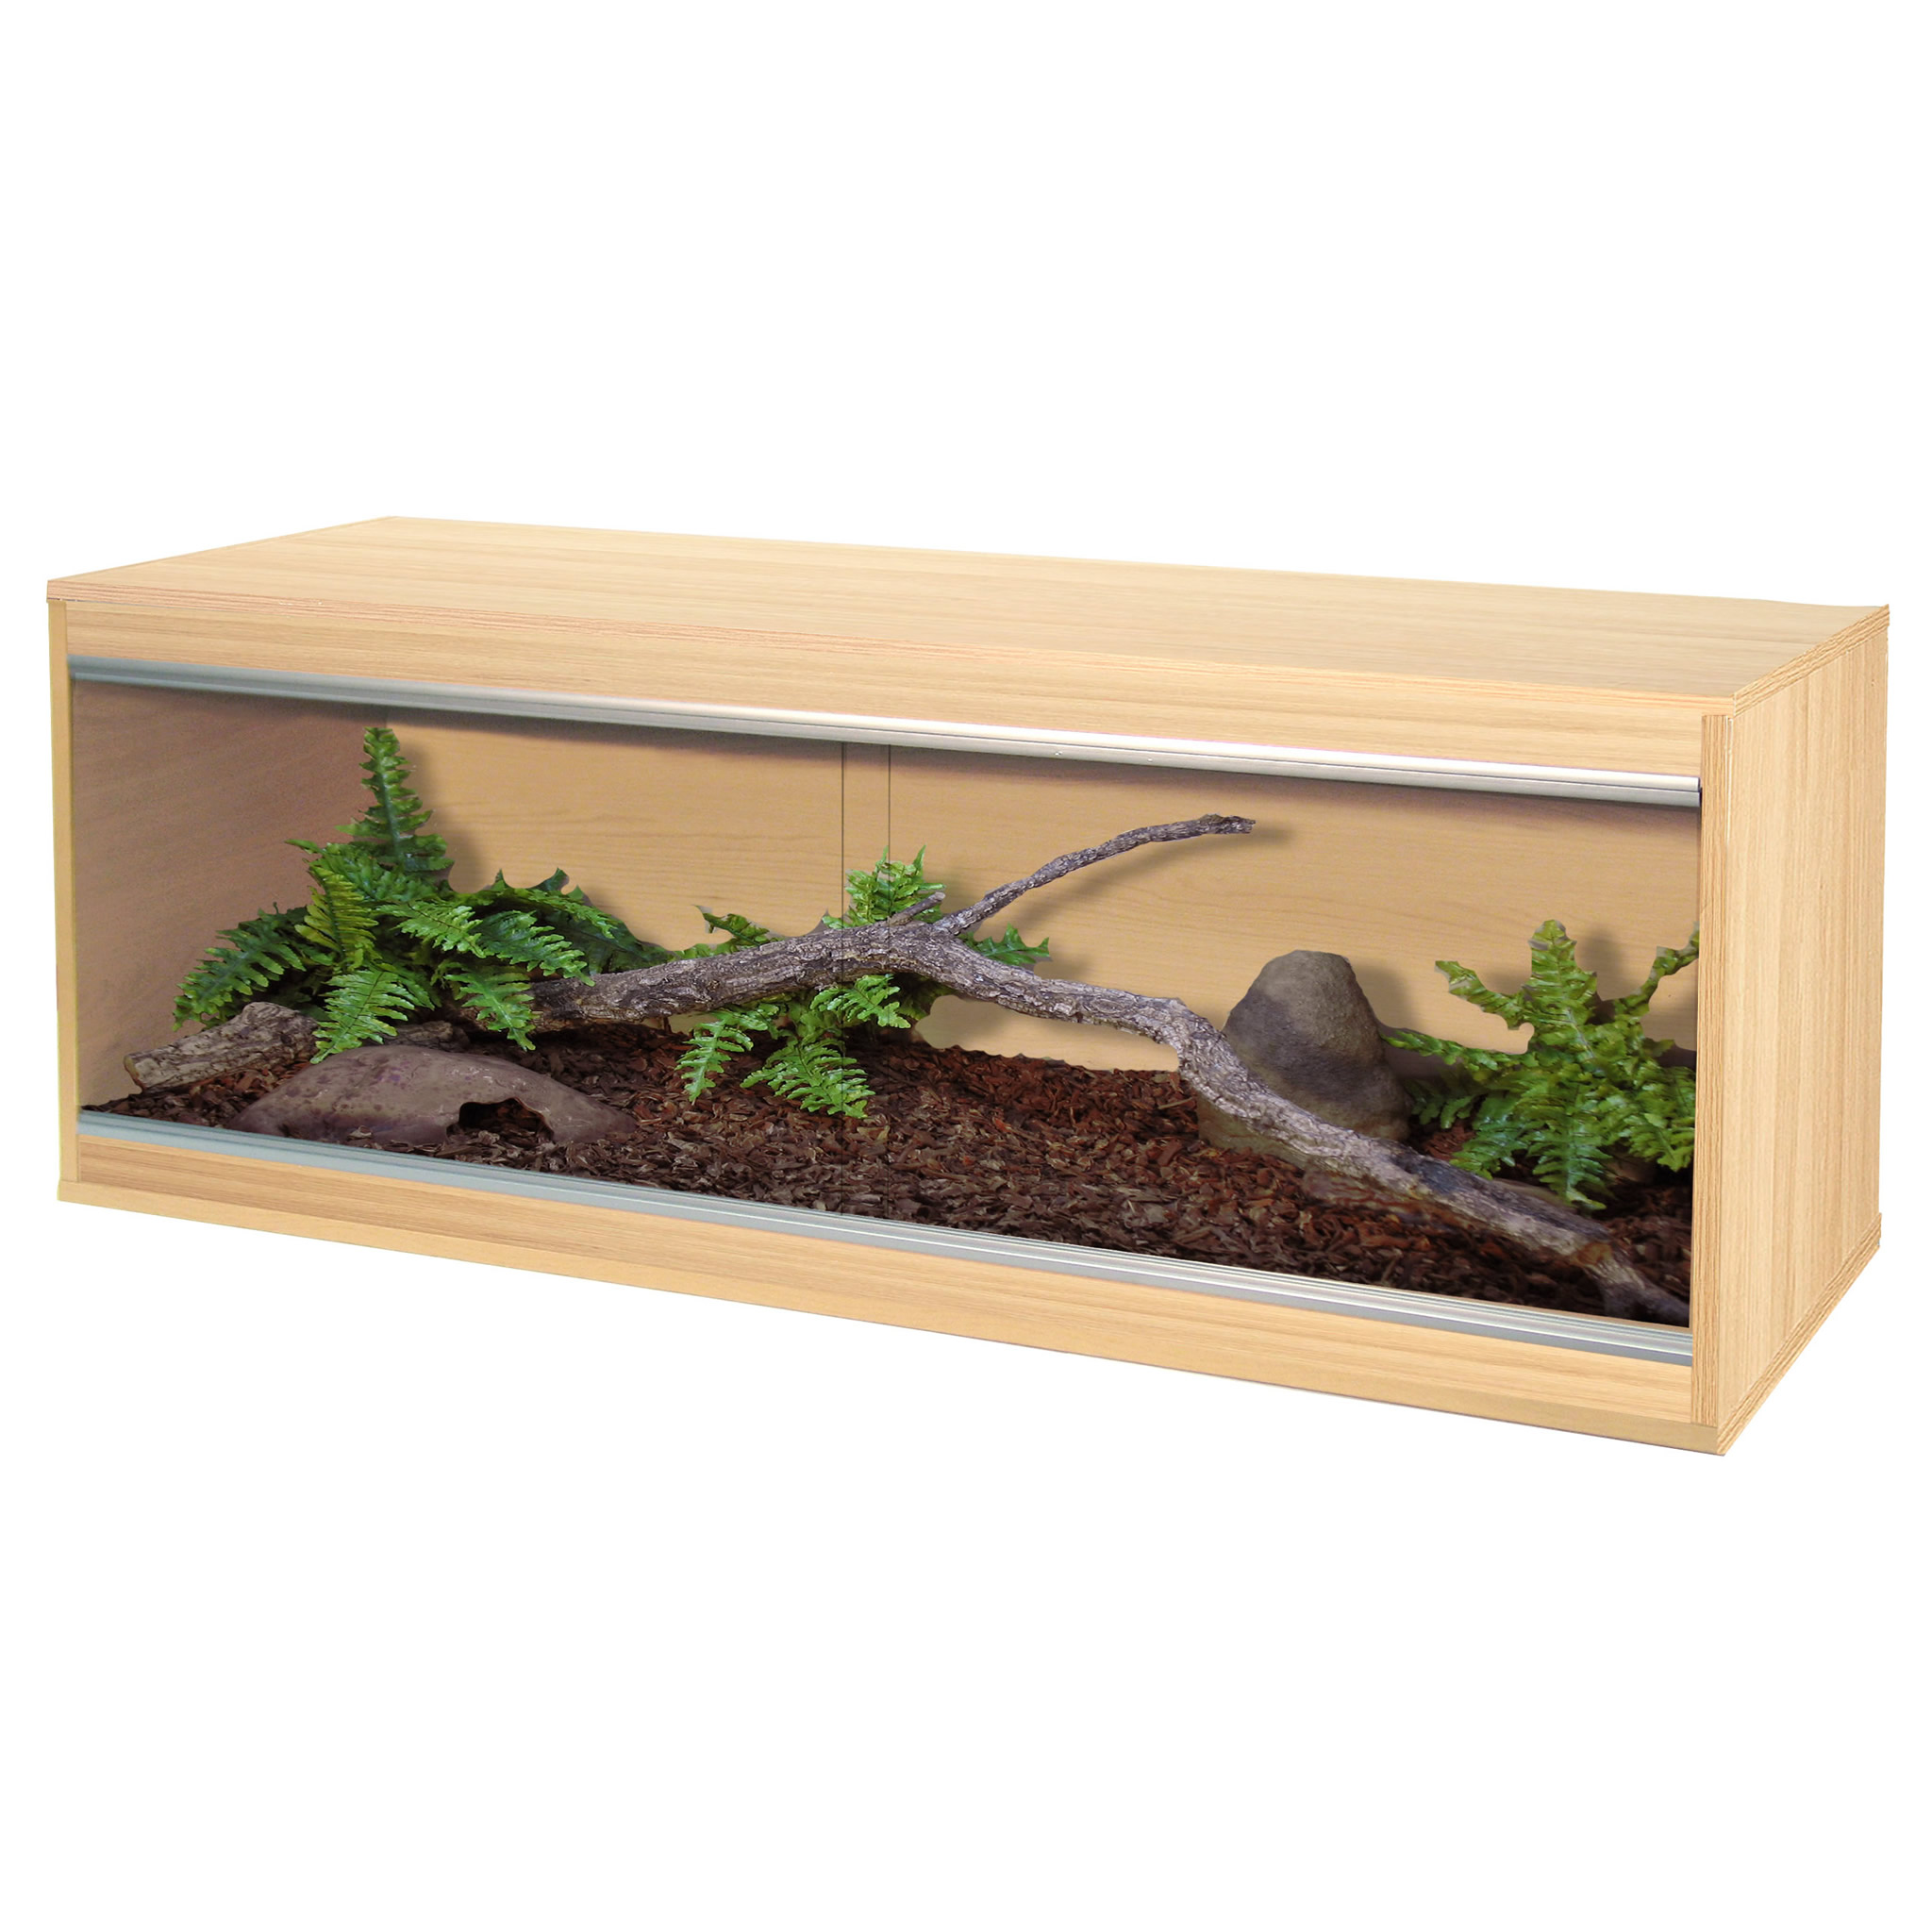 Tortoise table species specific products vivexotic vivariums - Tortoise Table Species Specific Products Vivexotic Vivariums 26